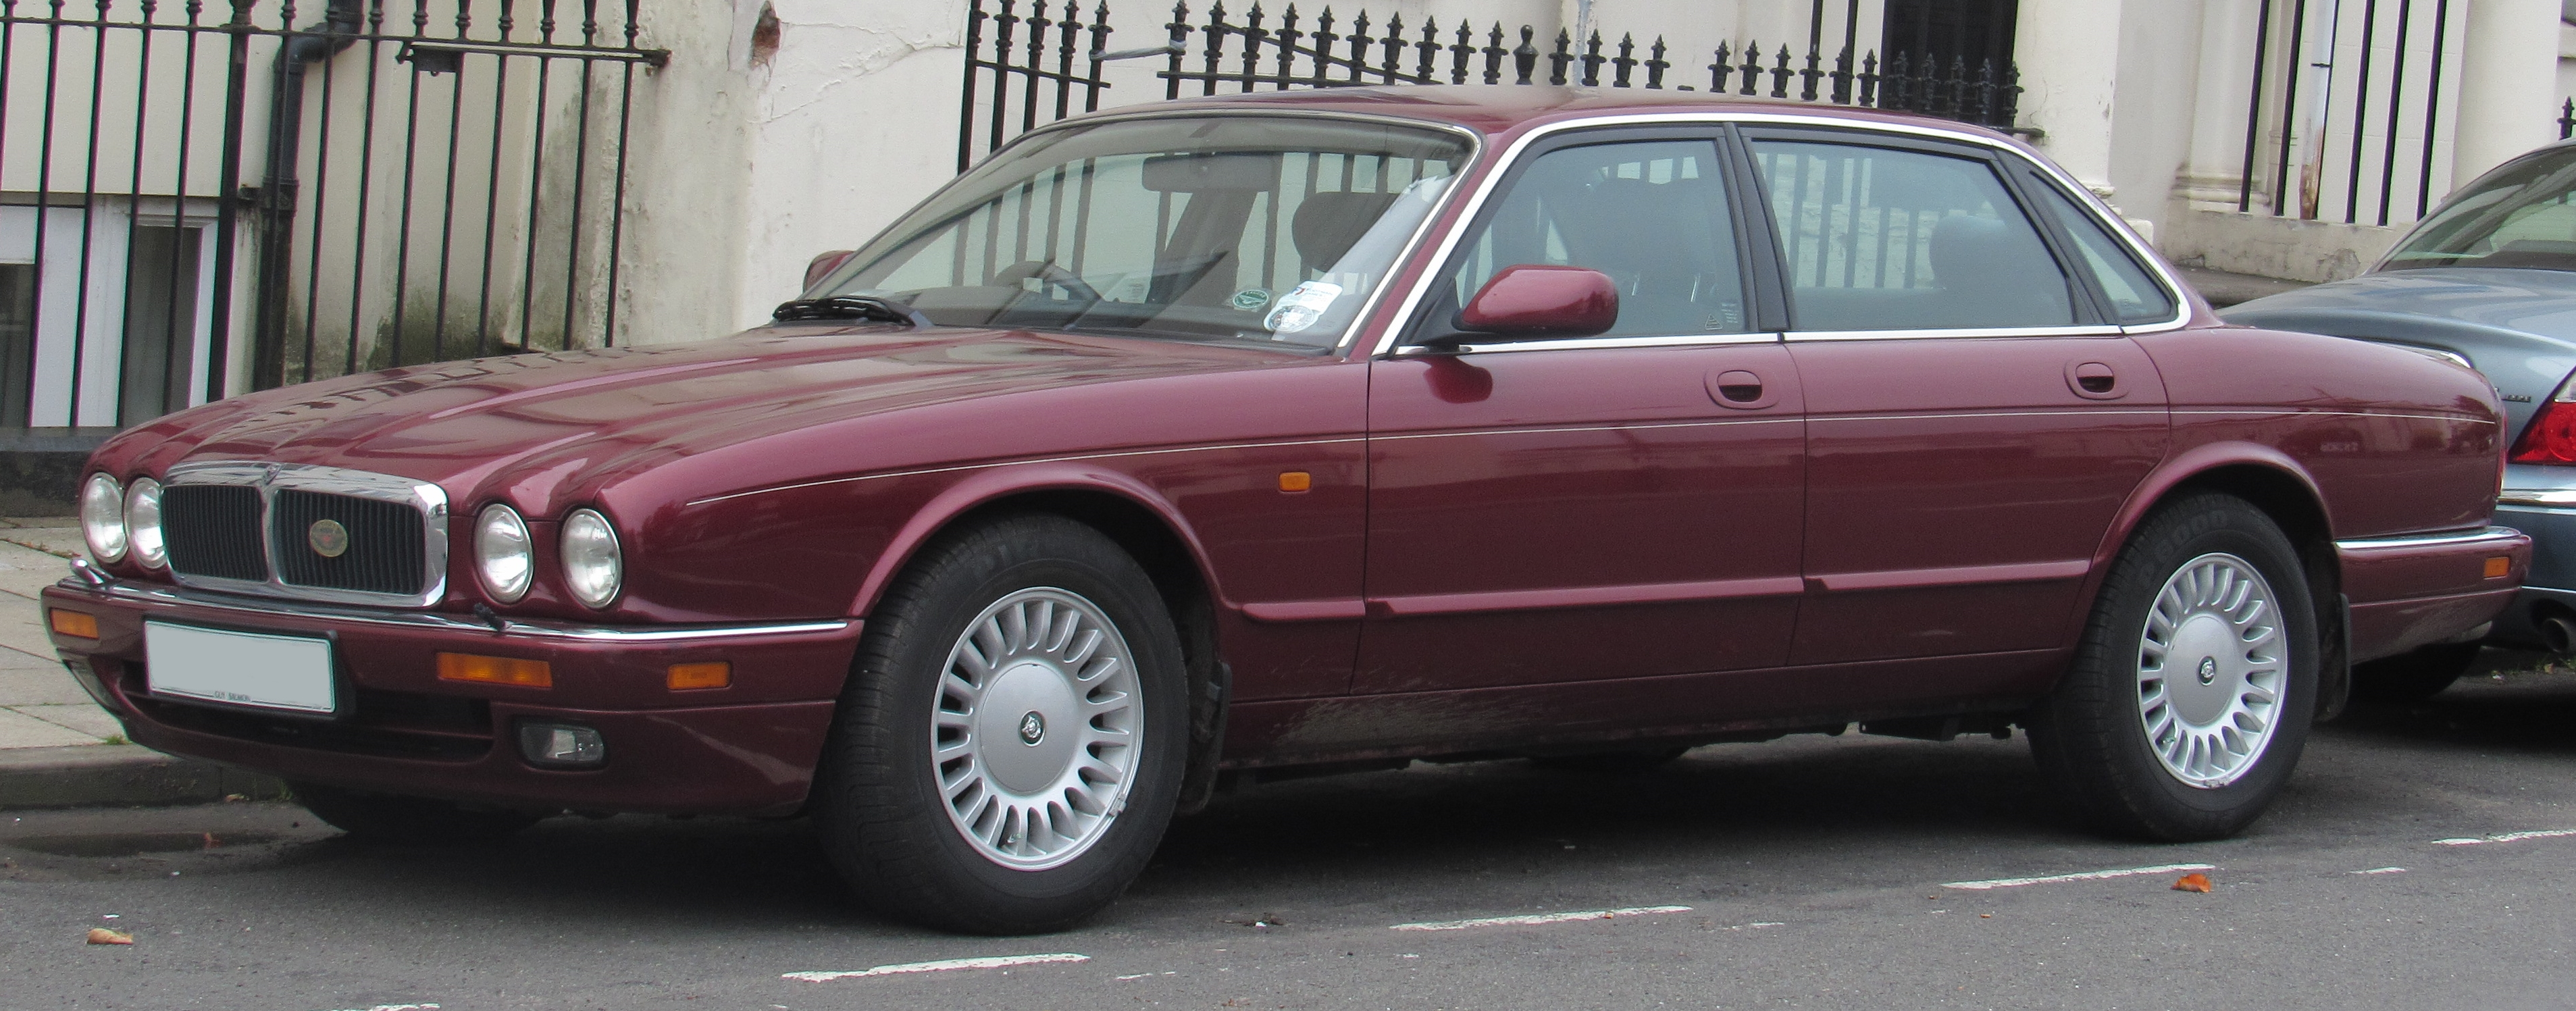 File:1997 Jaguar XJ6 3.2